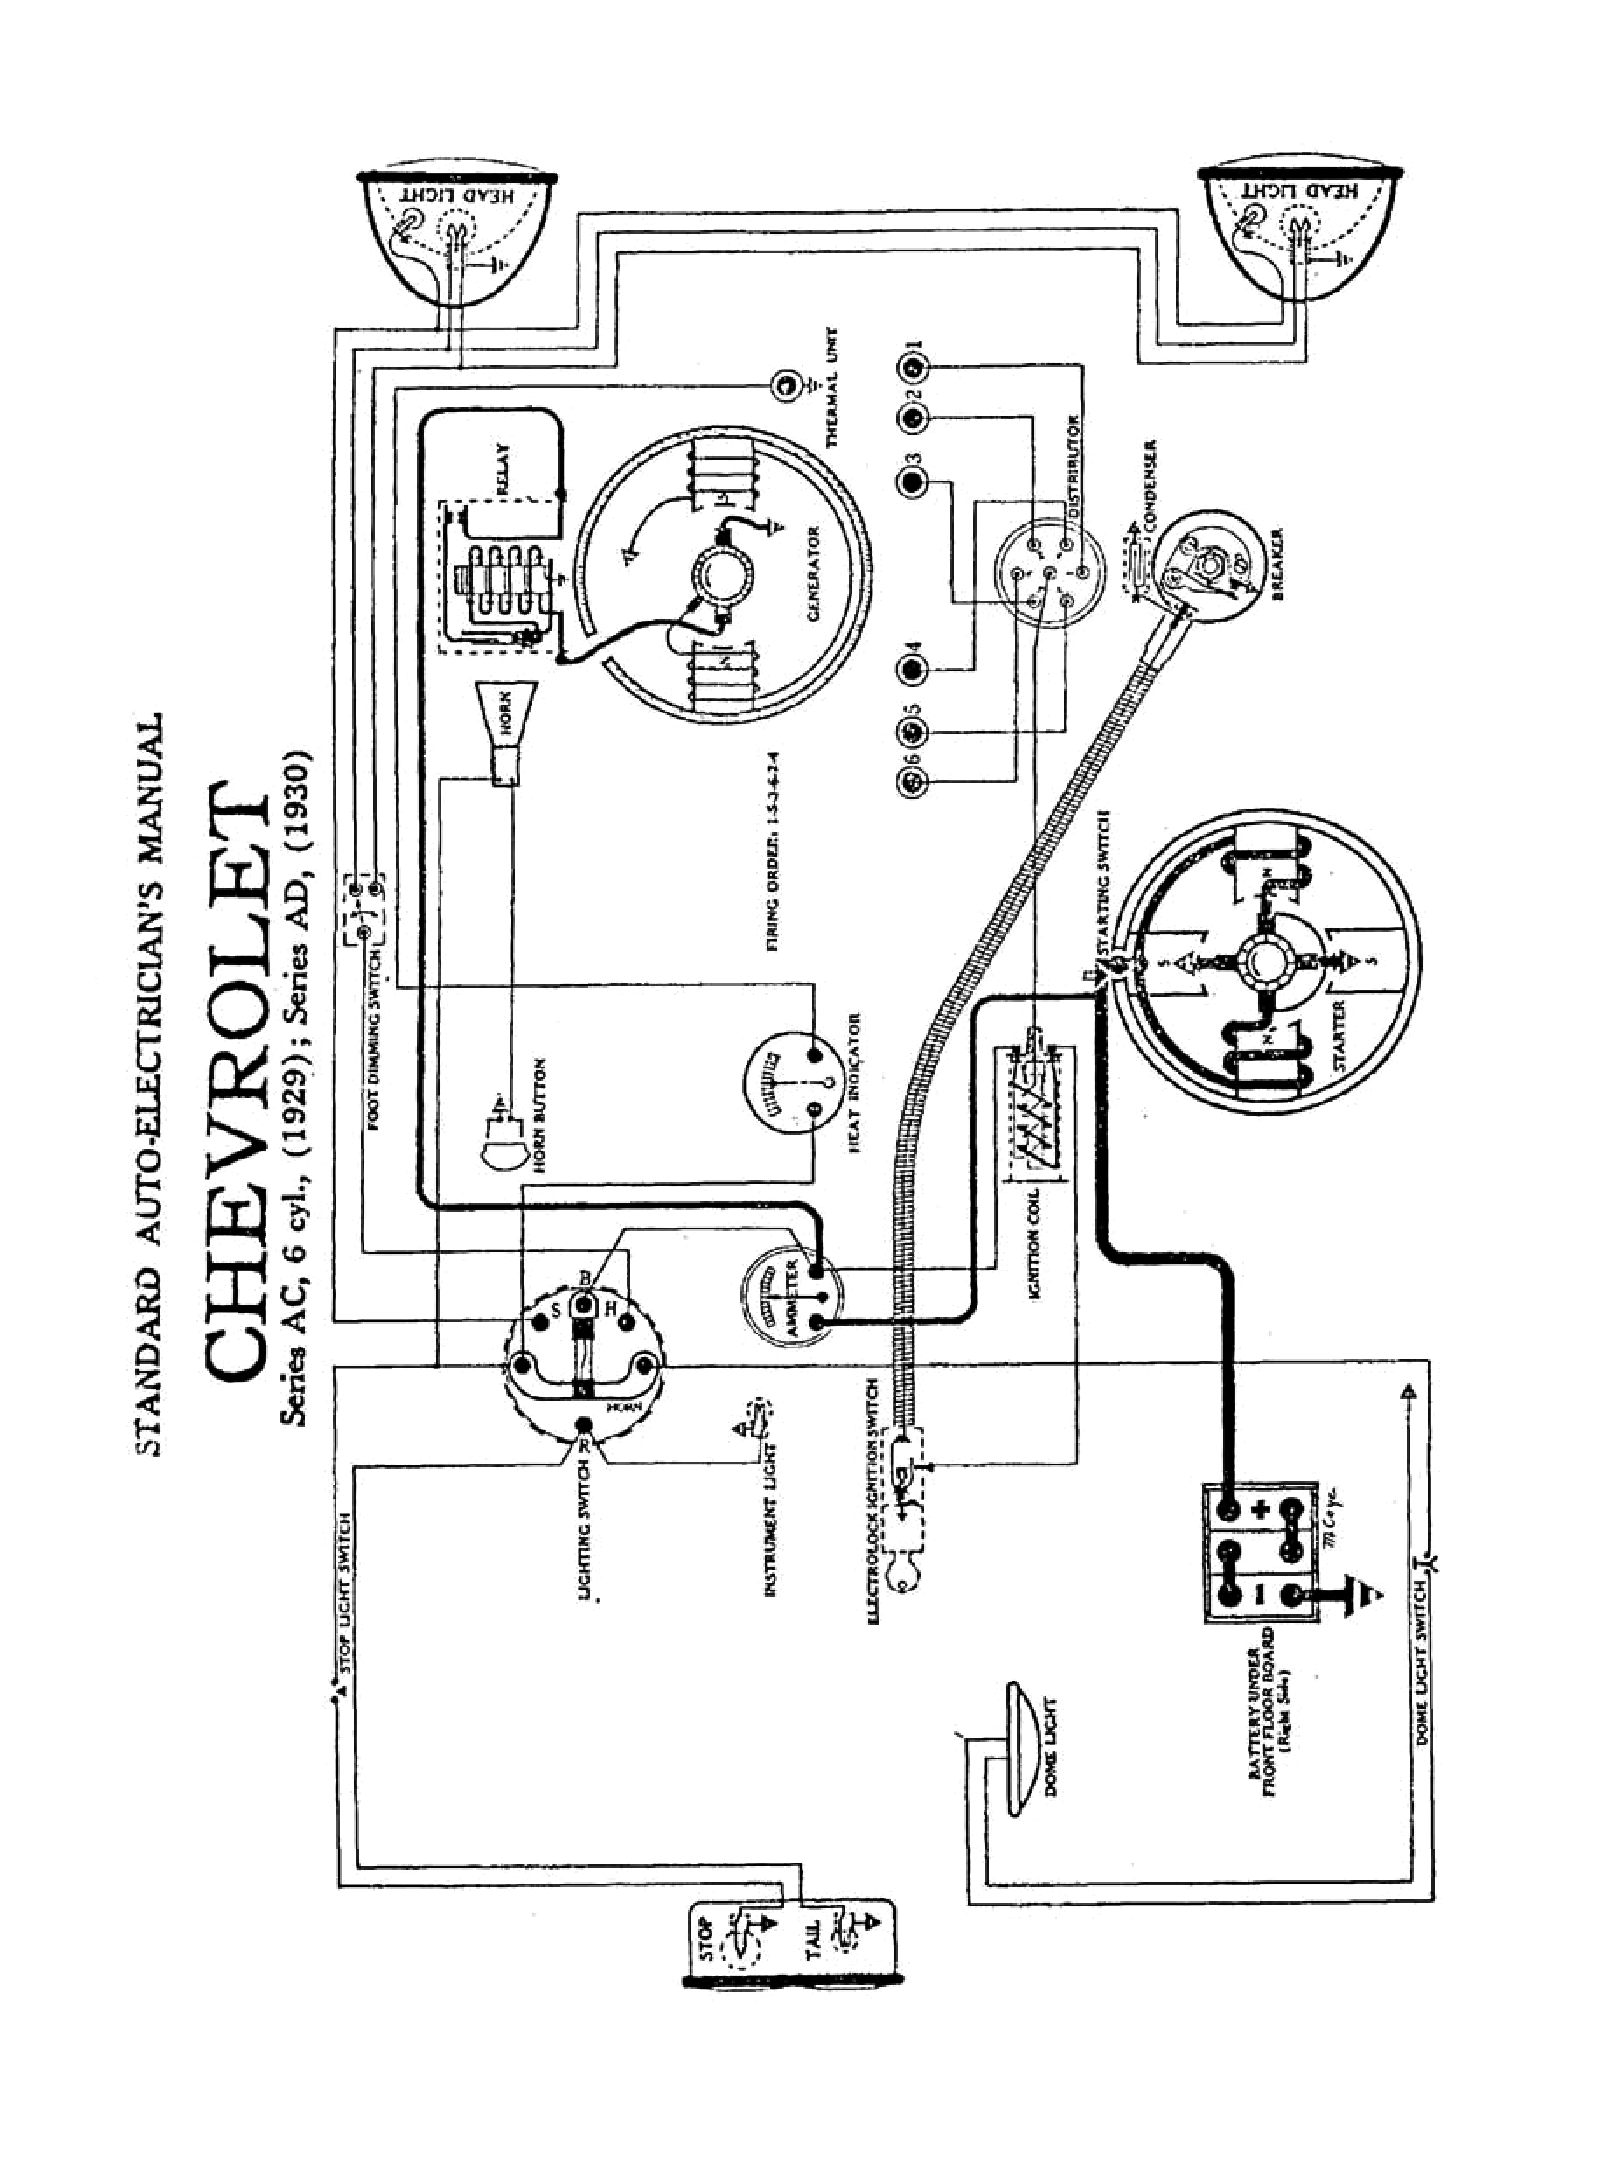 ford model wiring online circuit wiring diagram u2022 rh electrobuddha co uk